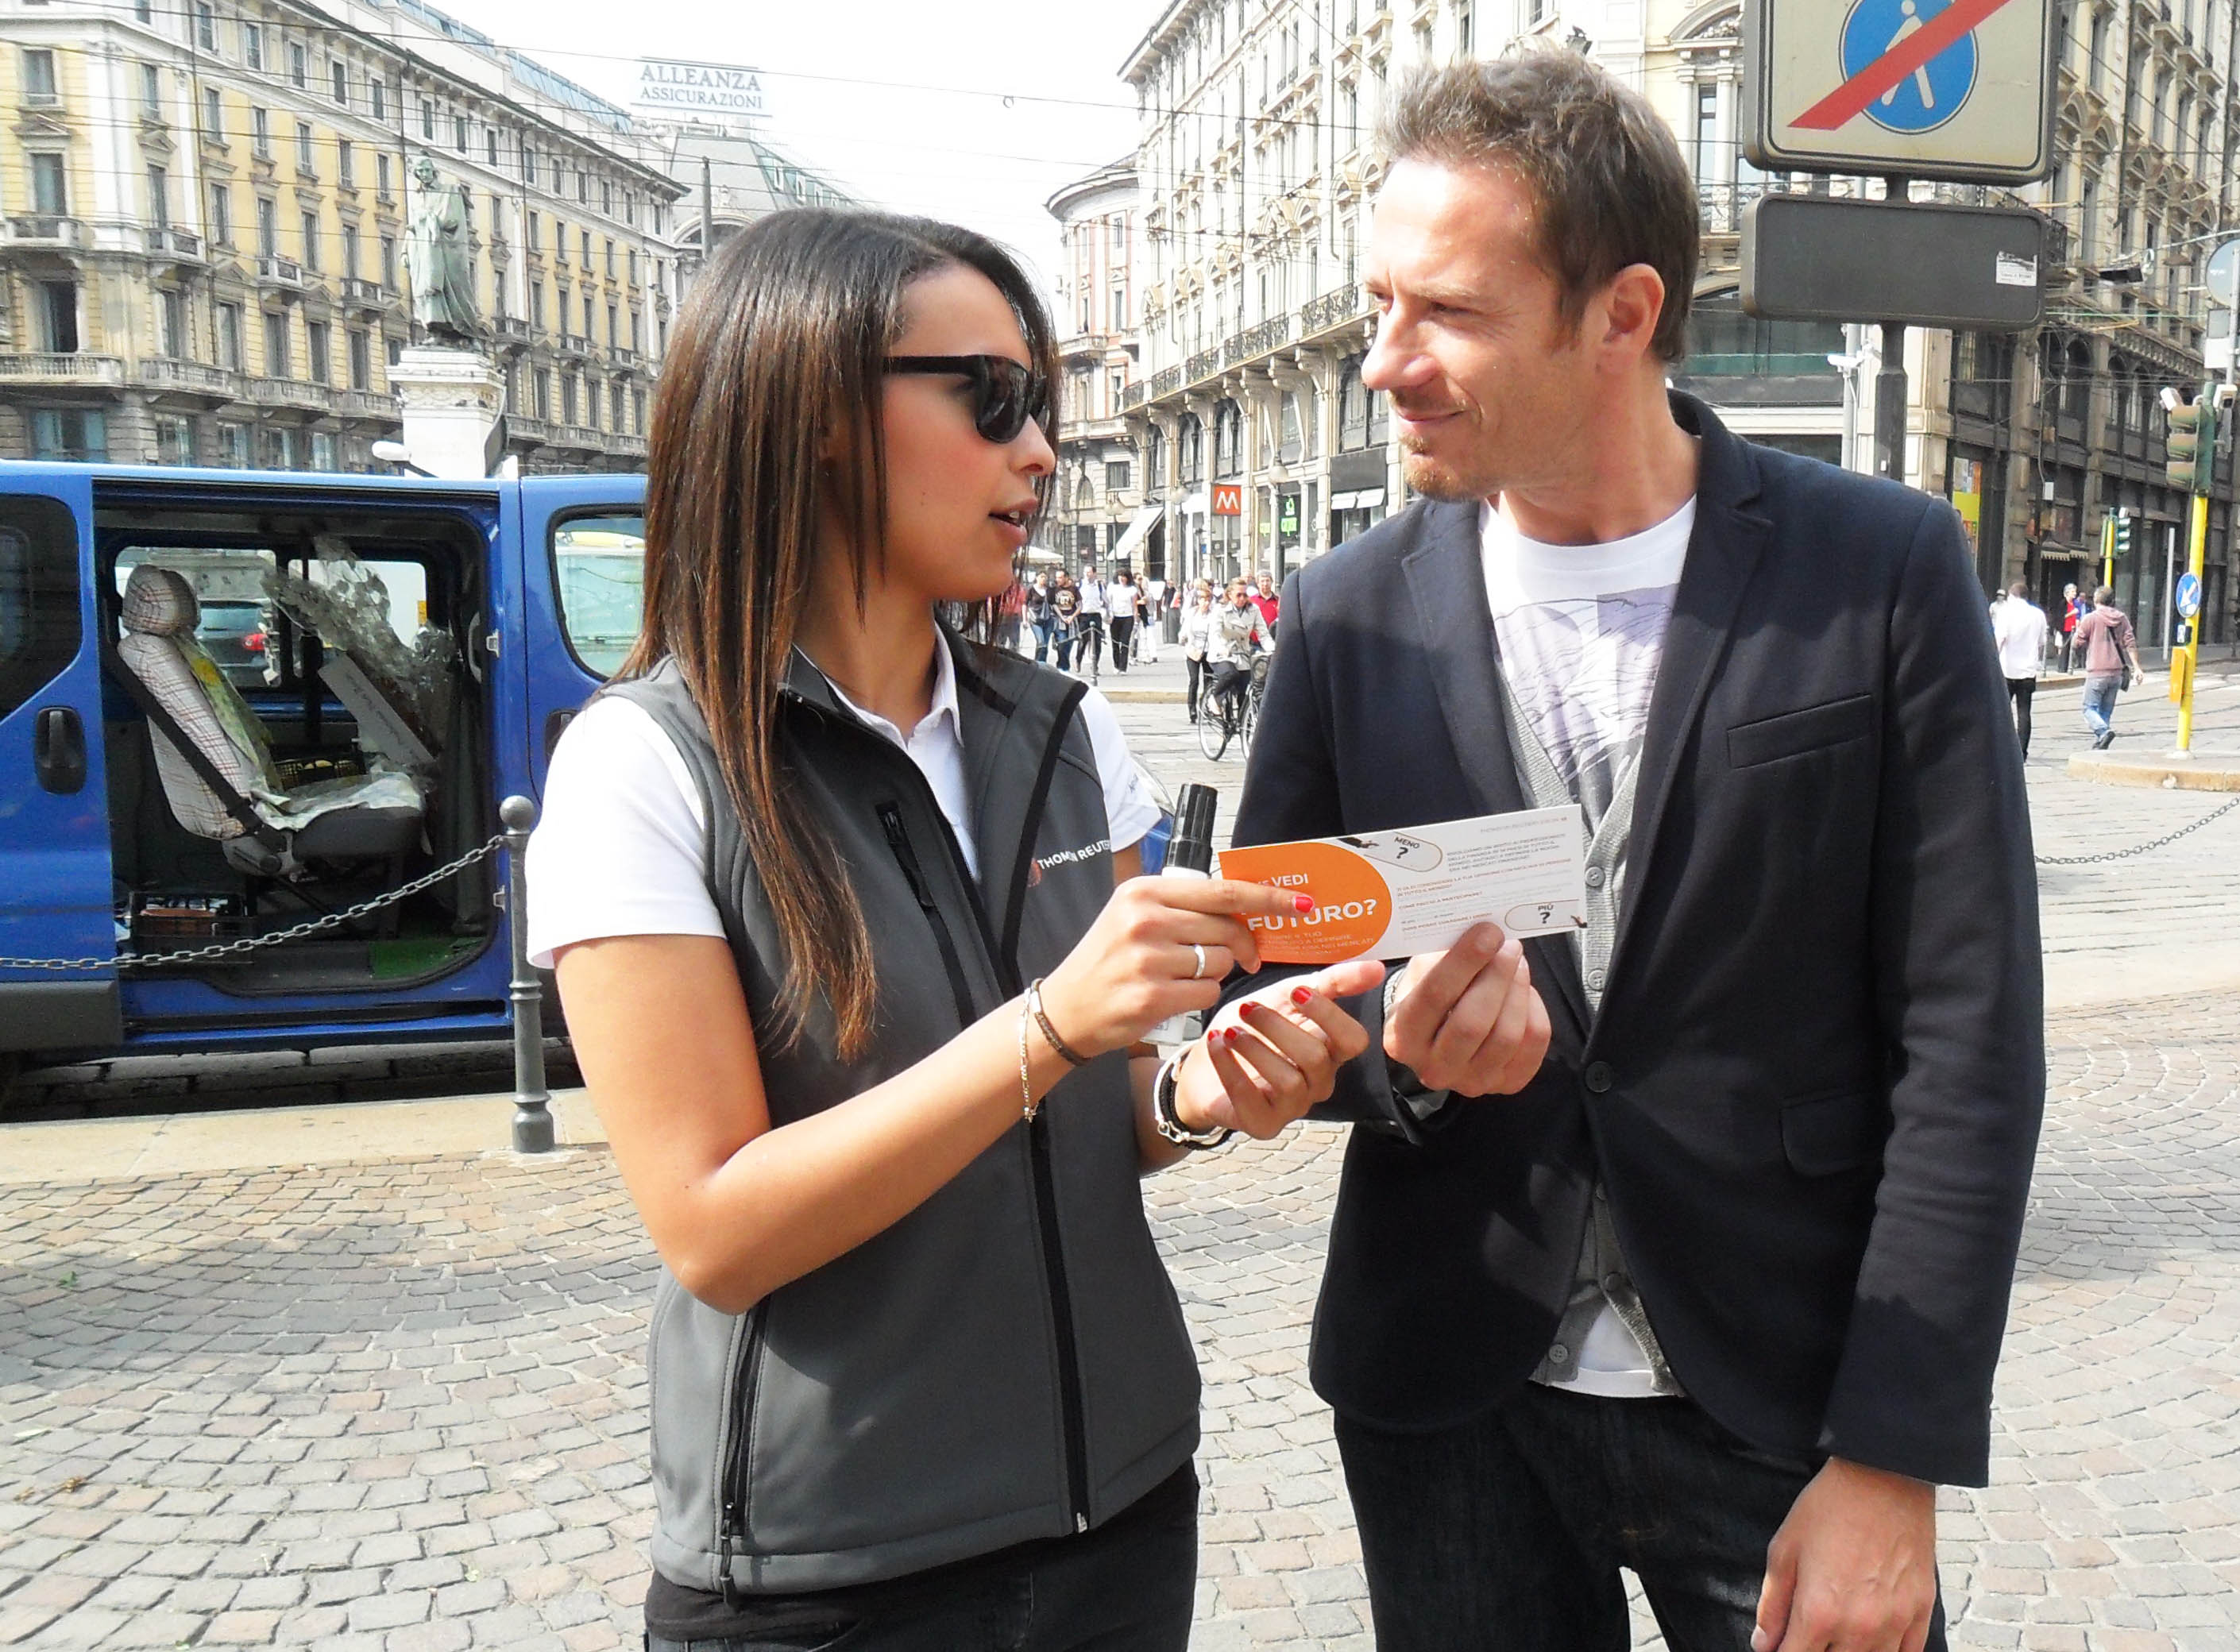 event marketing le tendenze